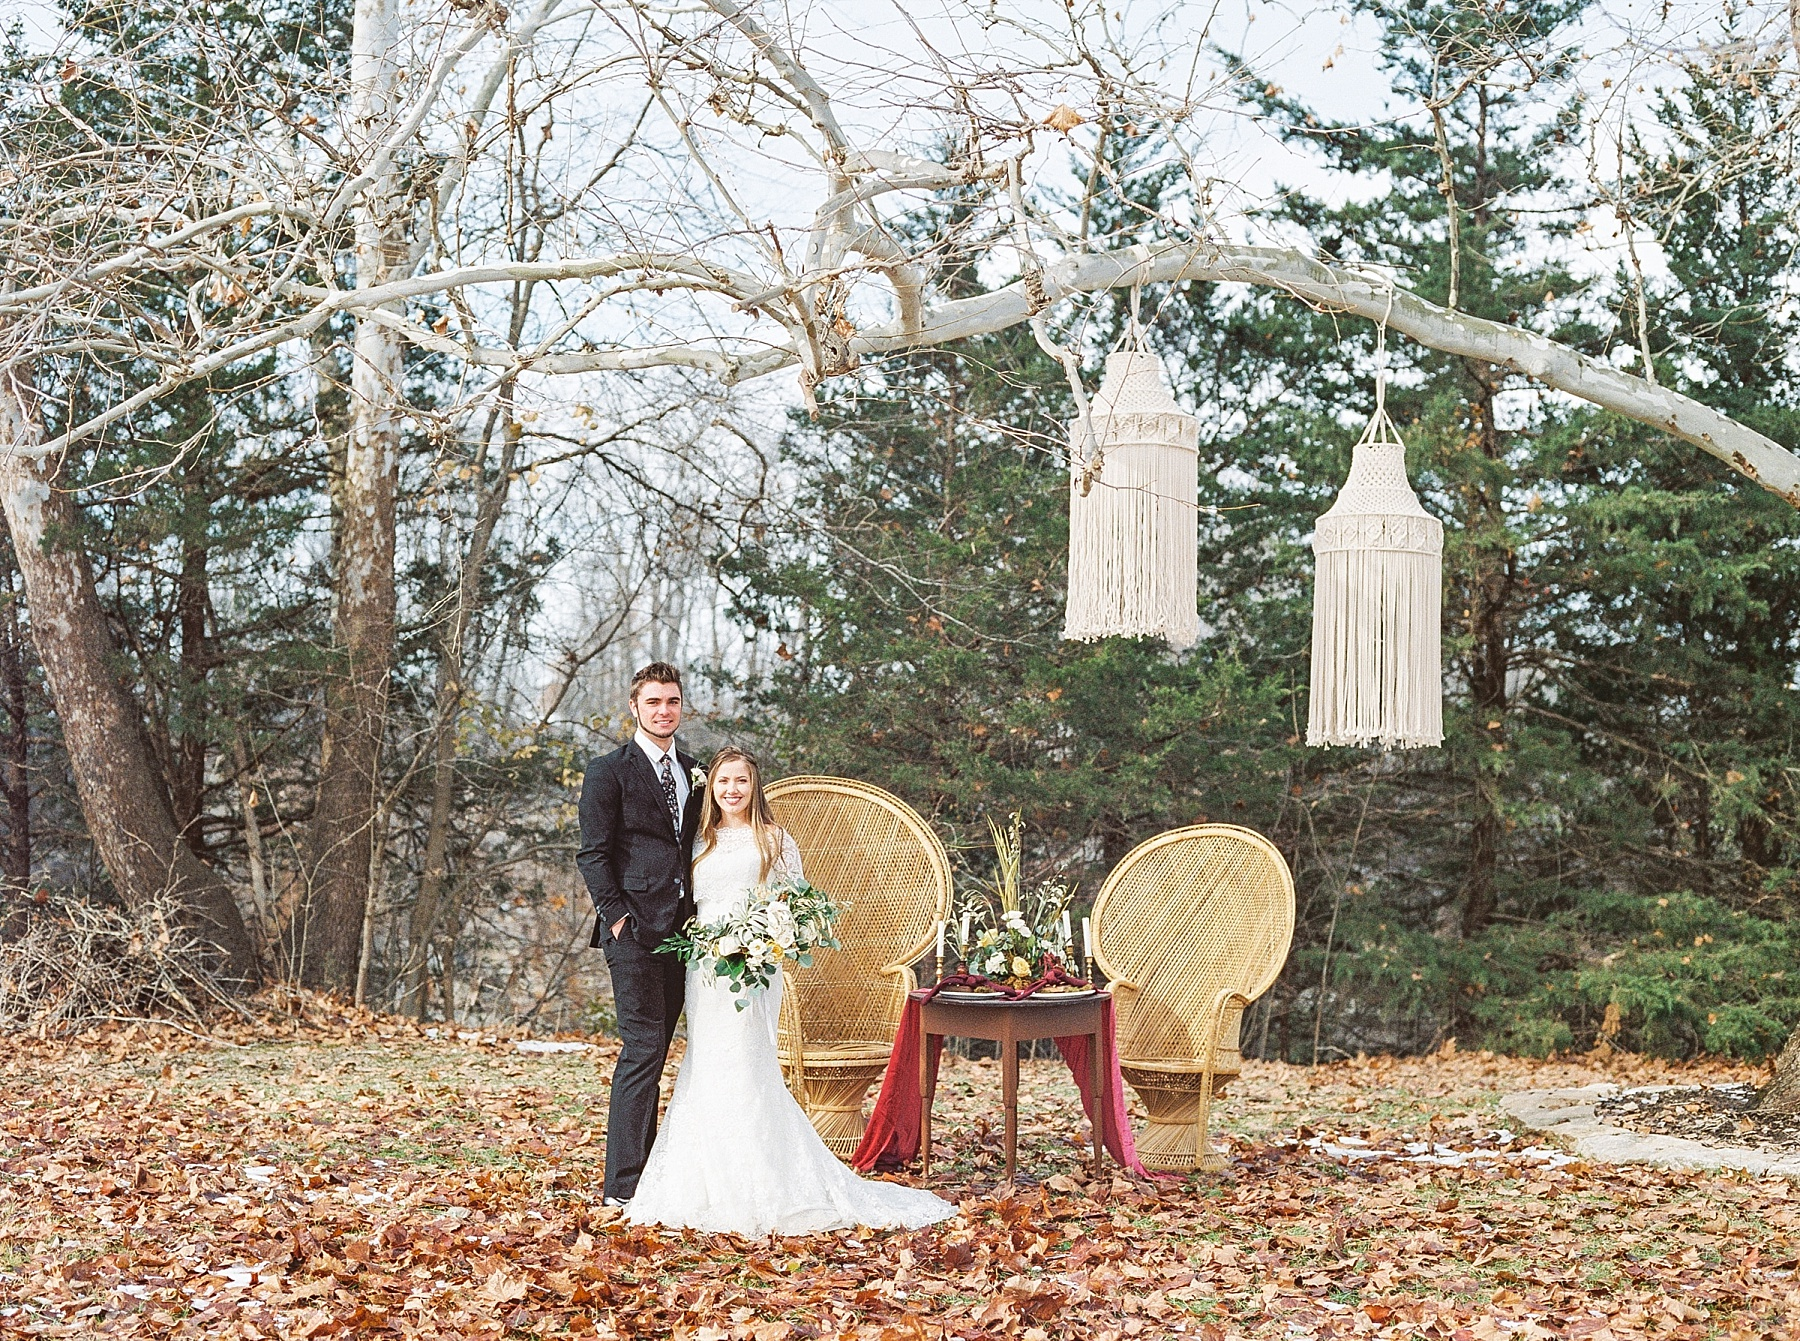 Snowy Winter Wedding at Wildcliff Events Lake With Earthy Jewel Tones and Organic Refined Style by Kelsi Kliethermes Photography Kansas City Missouri Wedding Photographer_0047.jpg